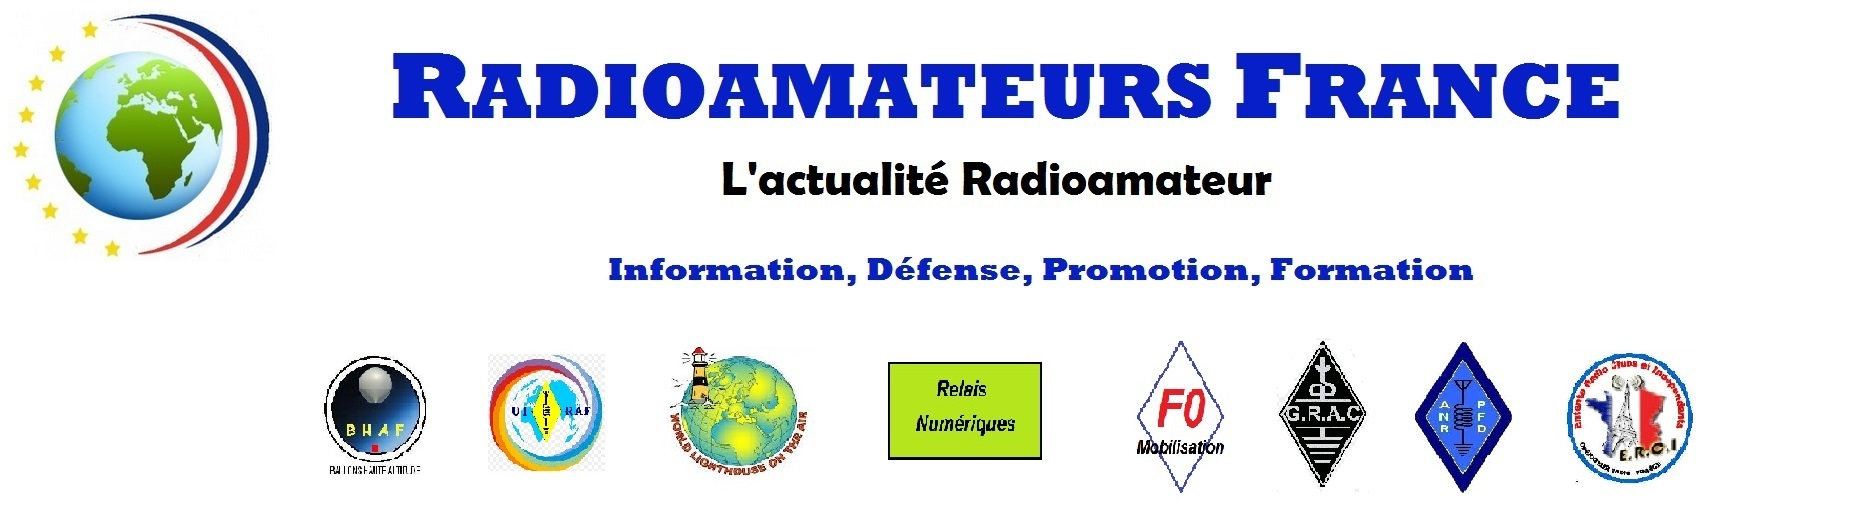 Radioamateurs France